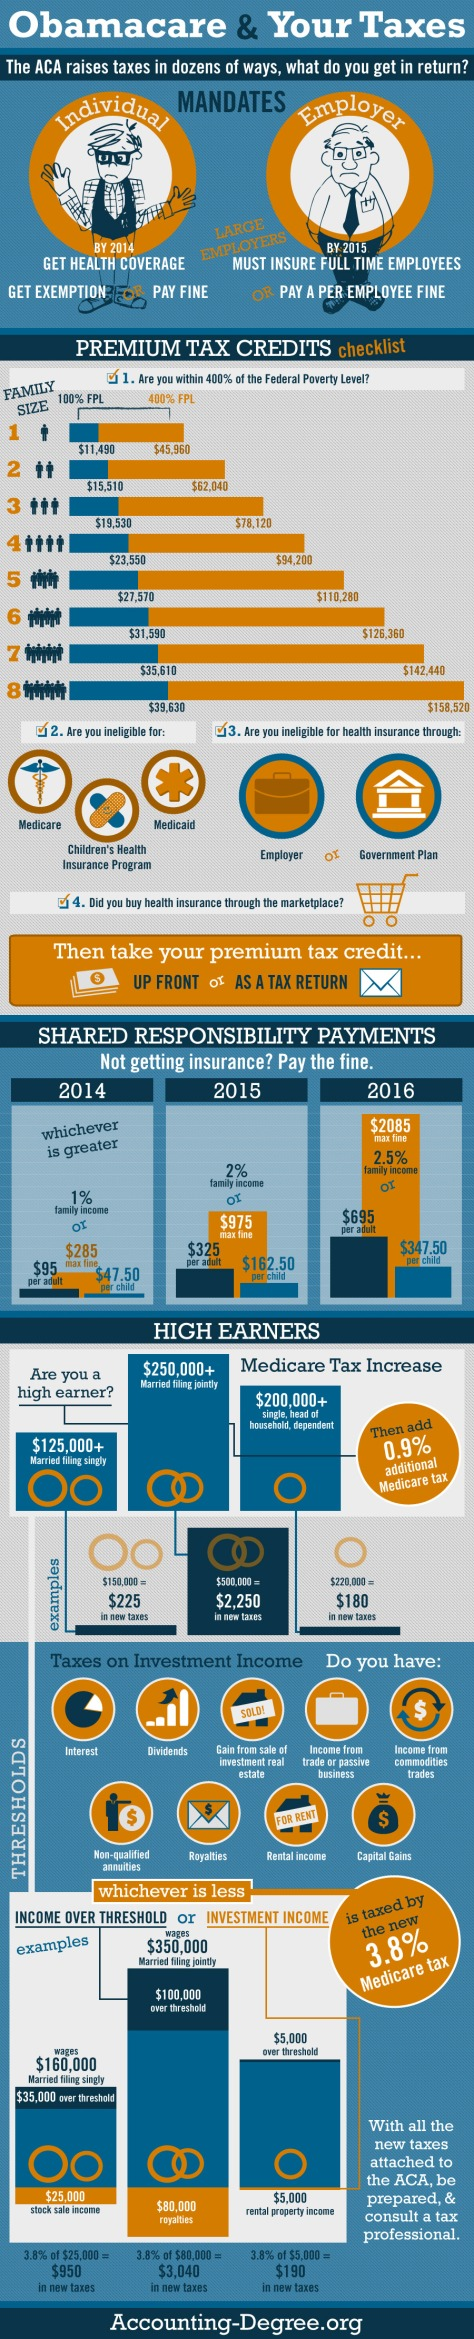 Obamacare-Taxes1